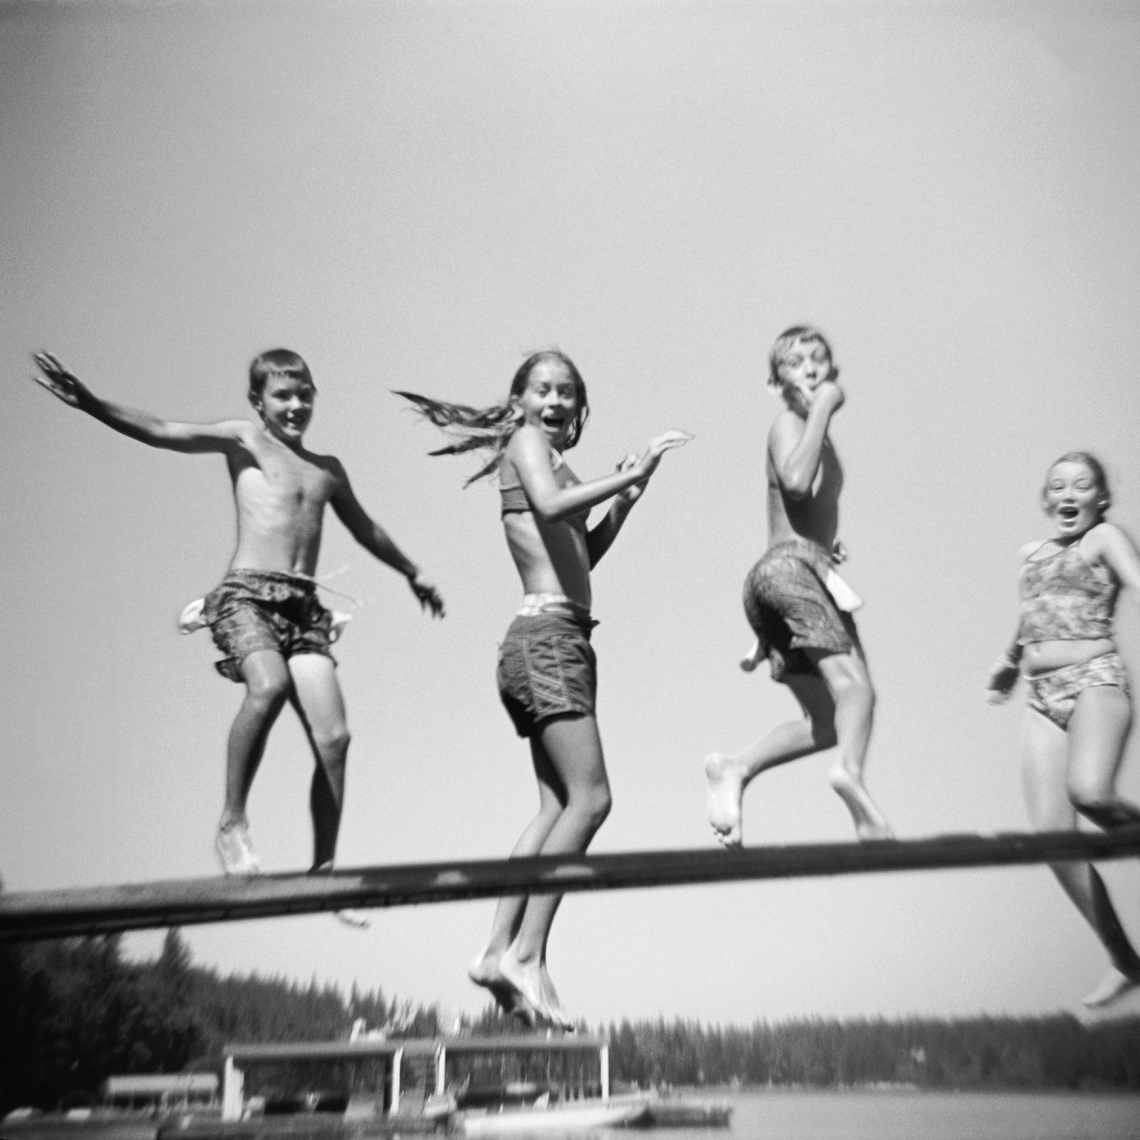 Black and white of Four kids jumping off a wooden diving board into a lake arms flailing San Francisco lifestyle photographer